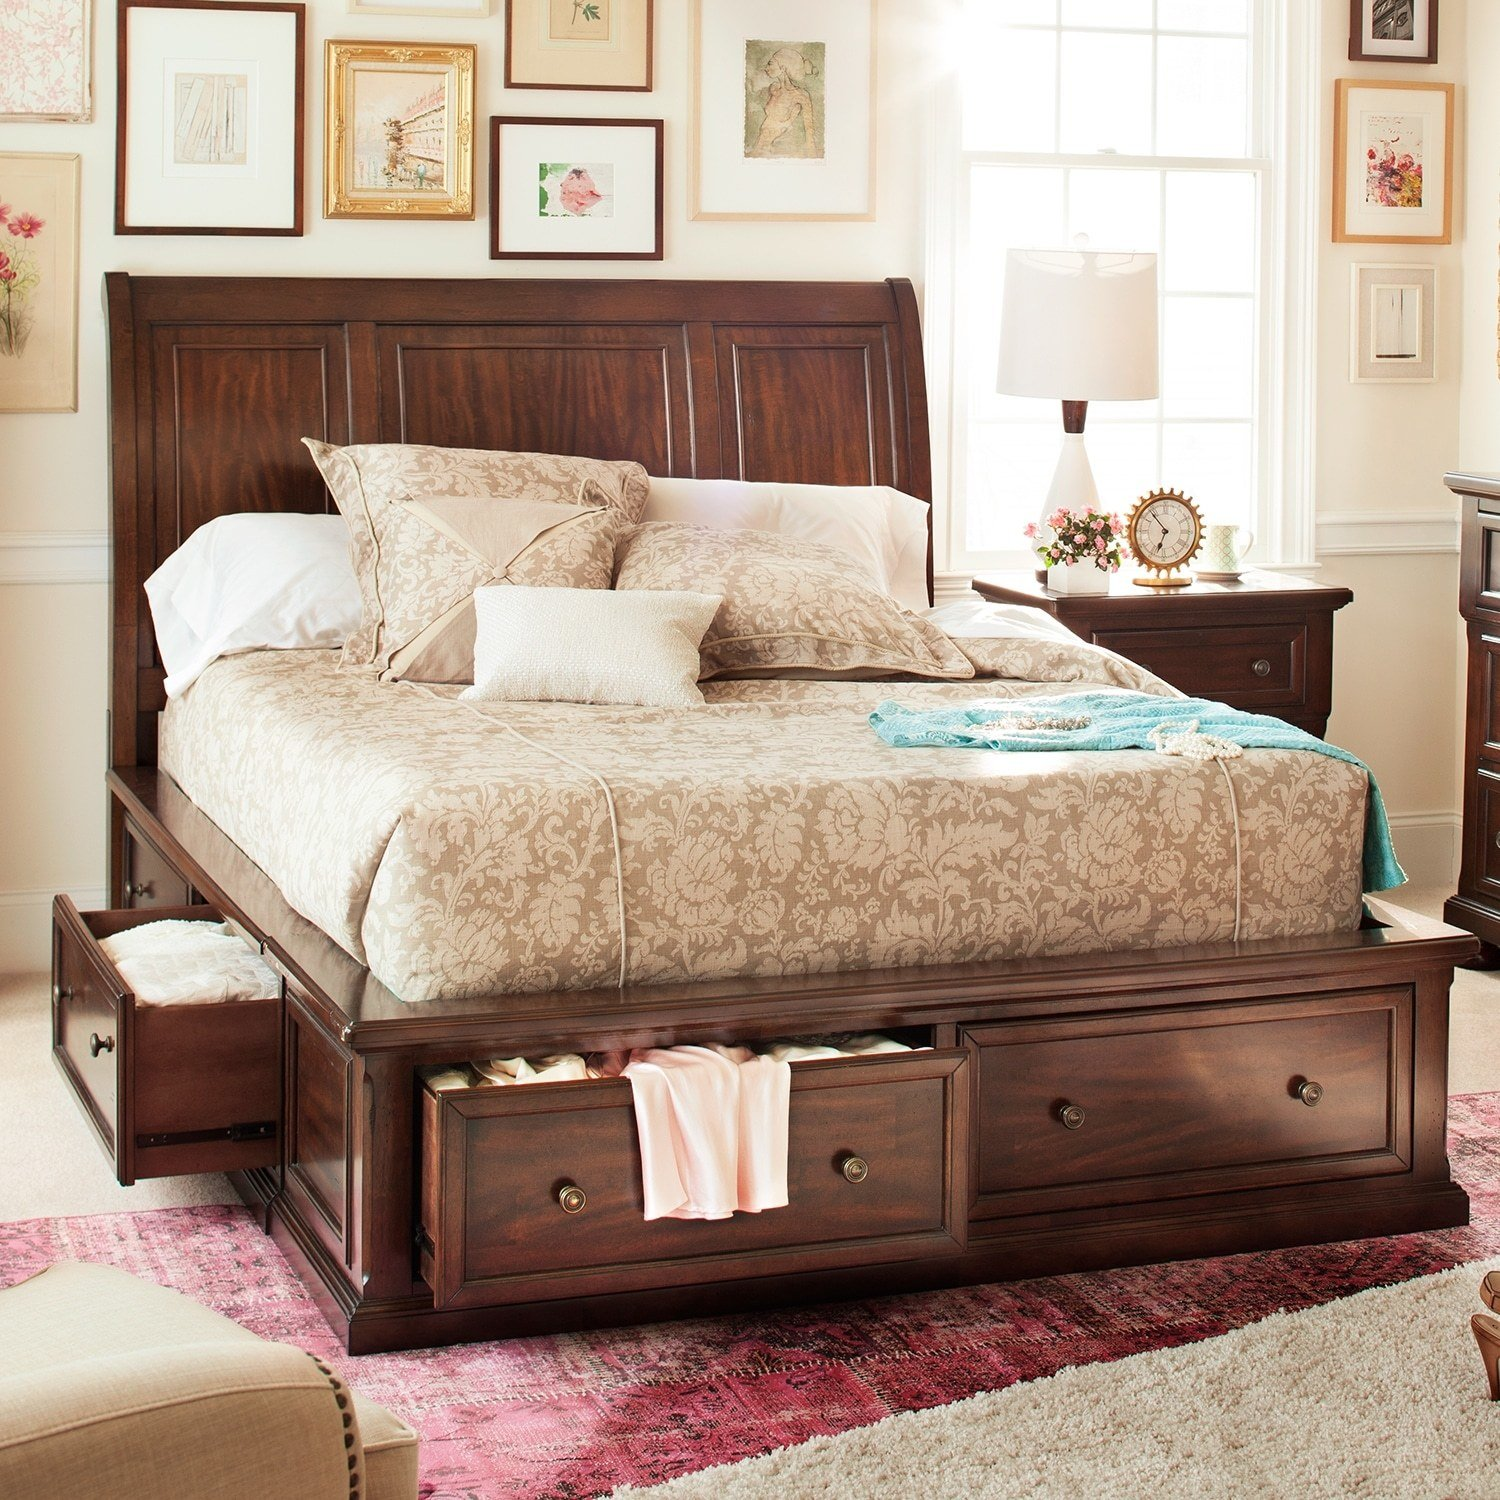 Best Hanover Queen Storage Bed Cherry Value City Furniture With Pictures